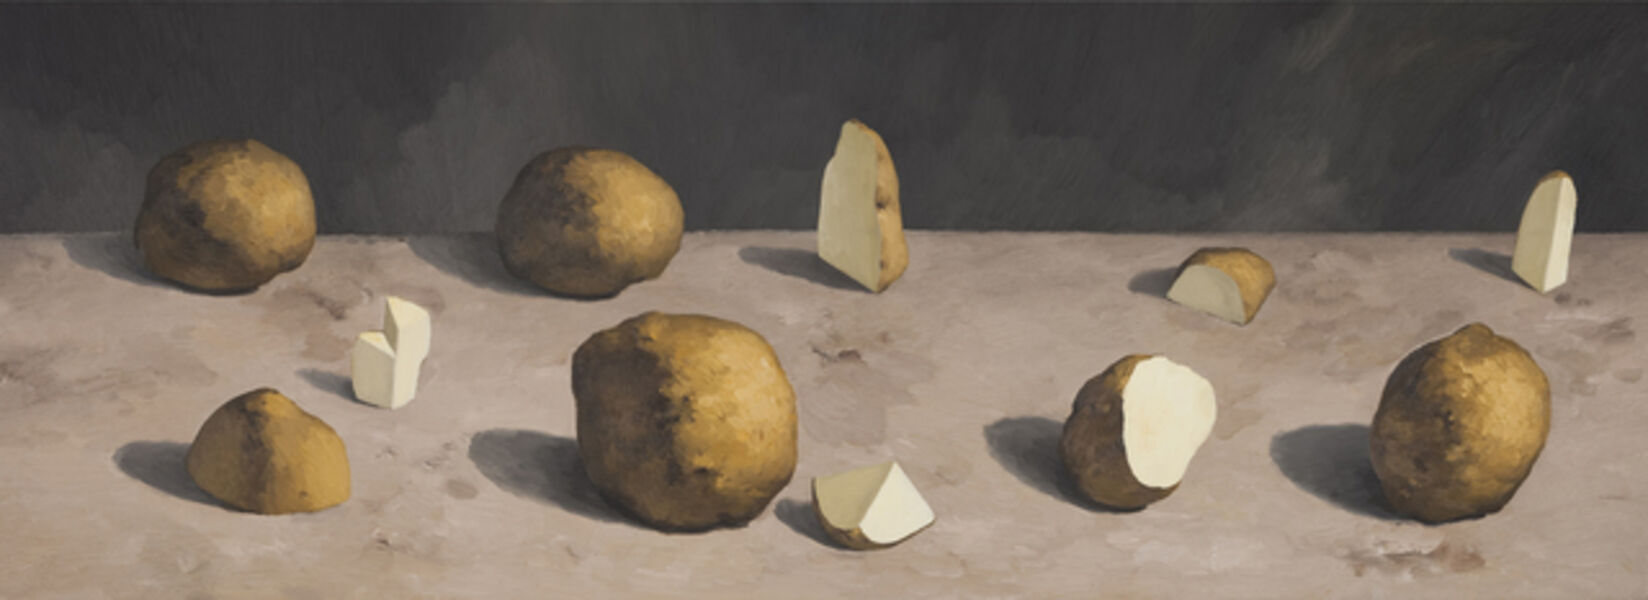 Yan Bing, 'Cutting Potatoes No.5', 2015